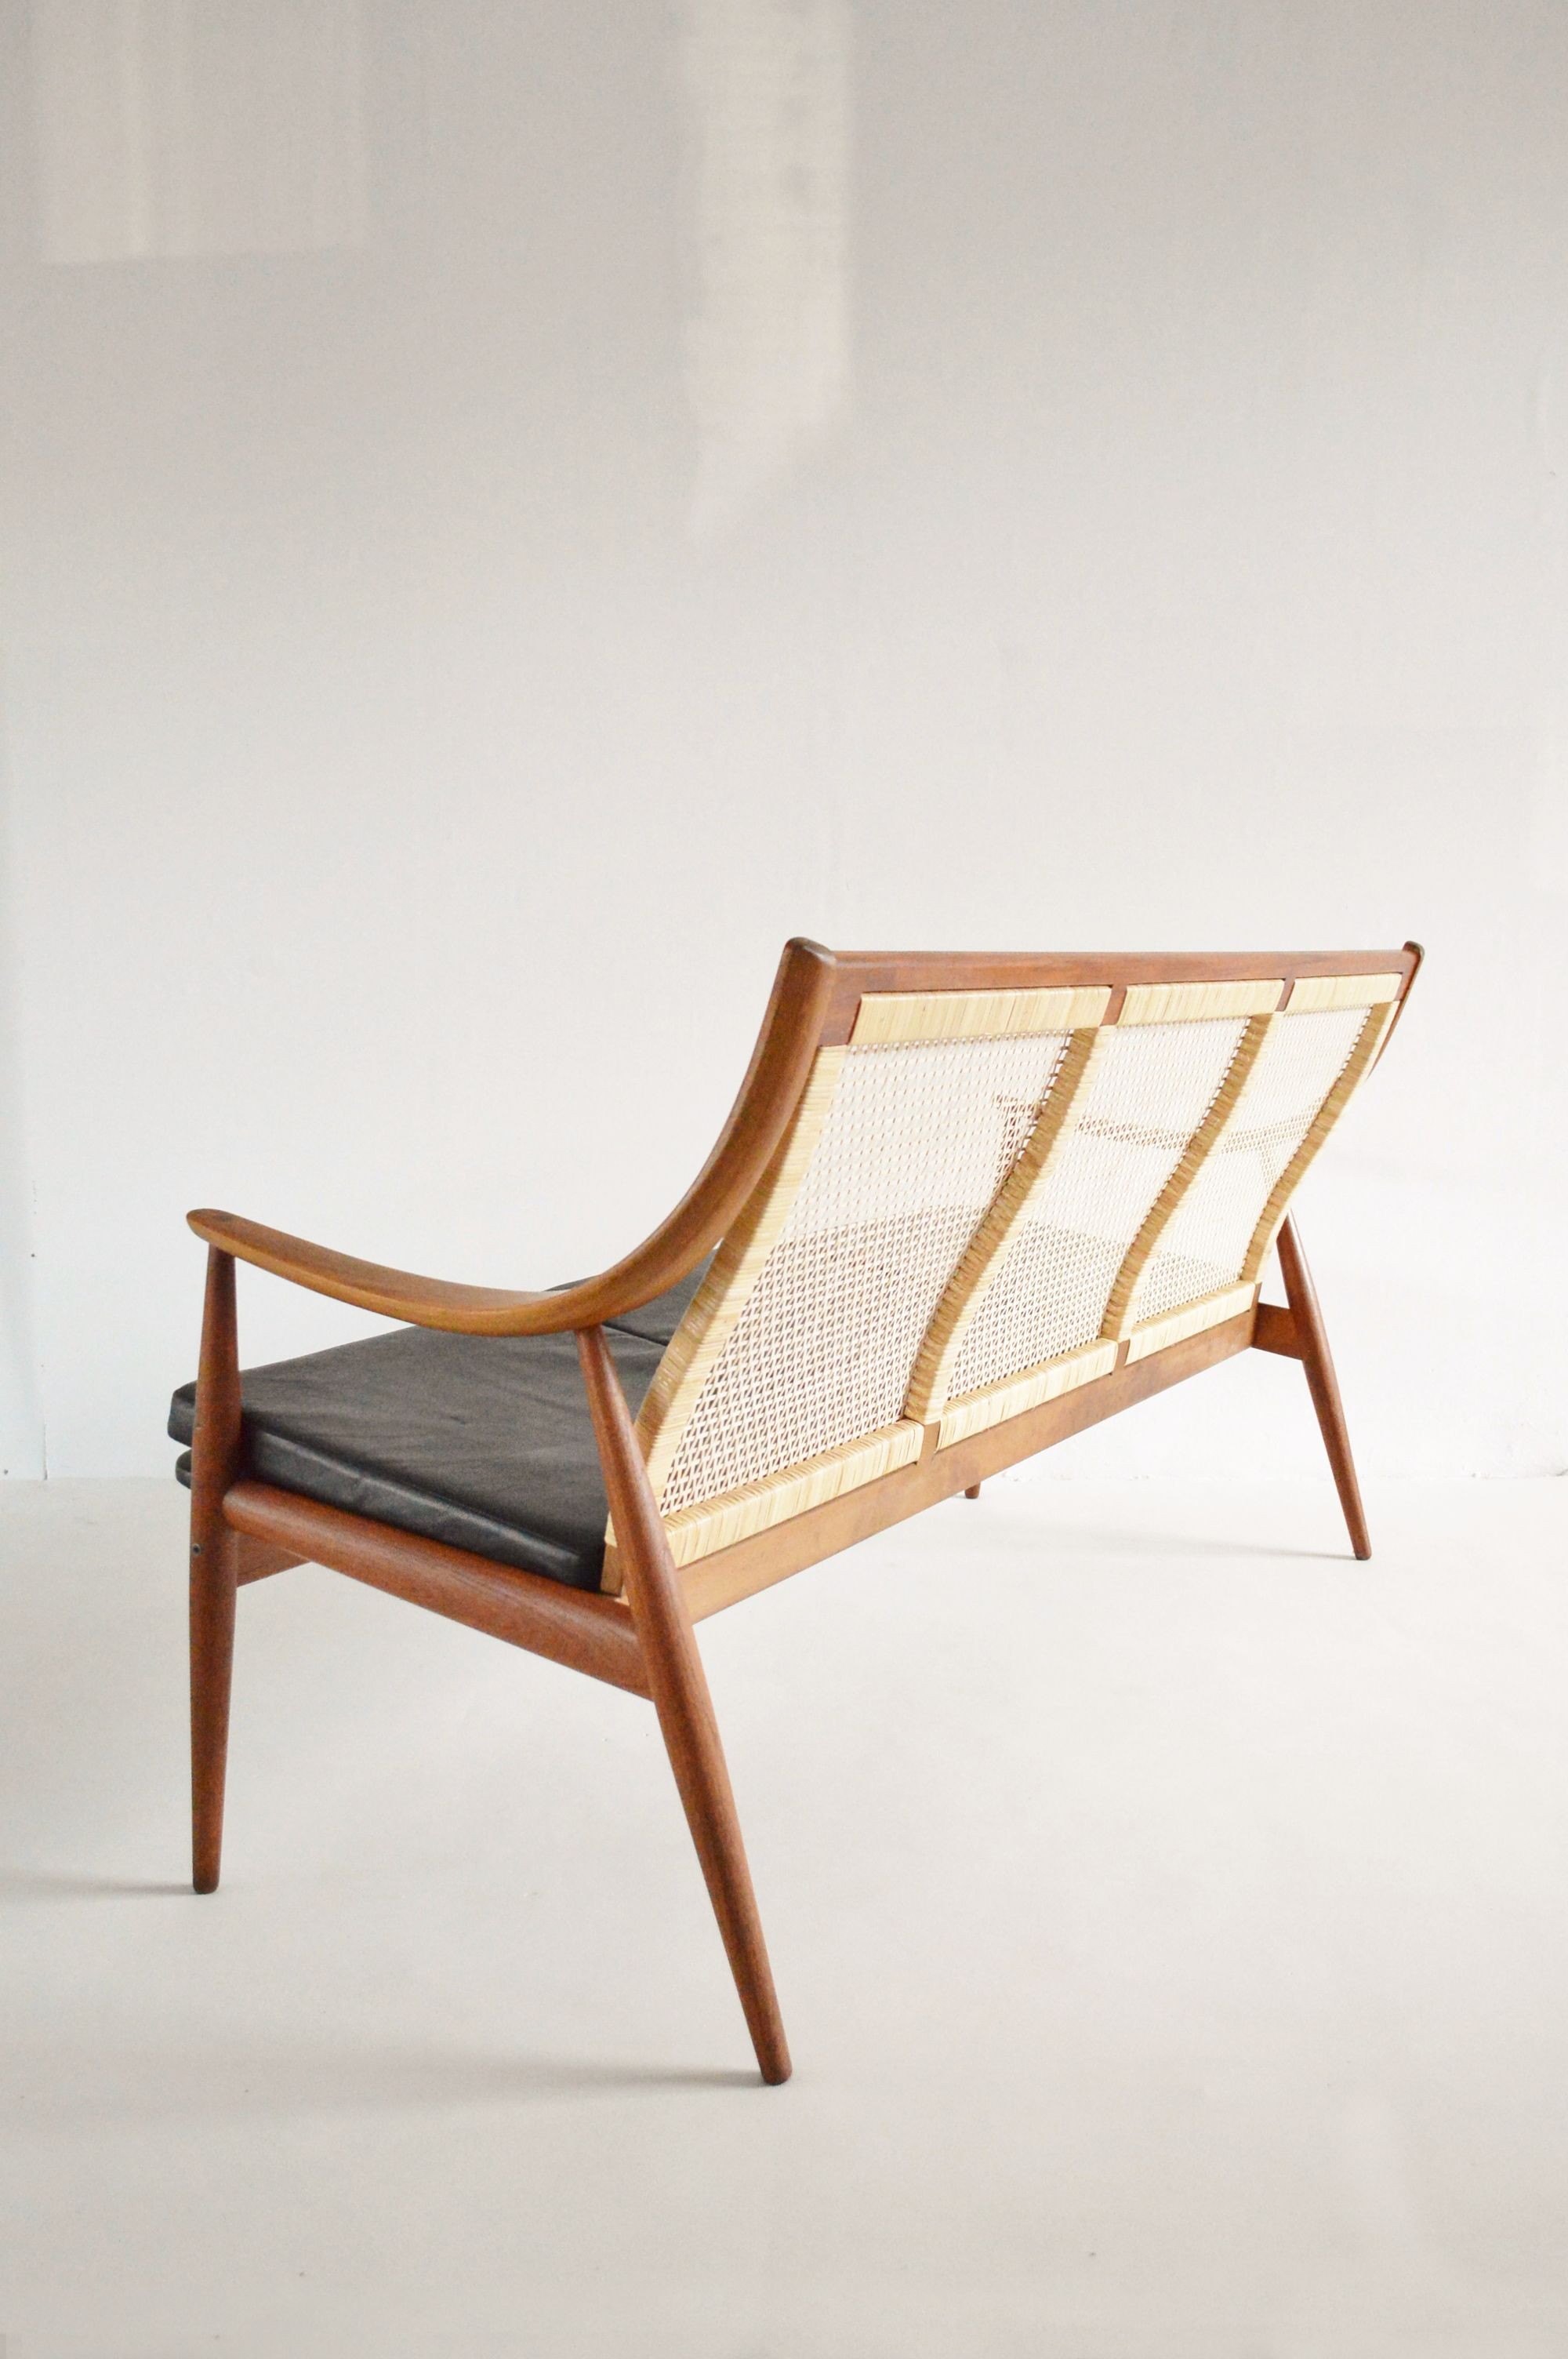 Peter Hvidt and Orla M¸lgaard Nielsen FD146 Teak and Cane Sofa